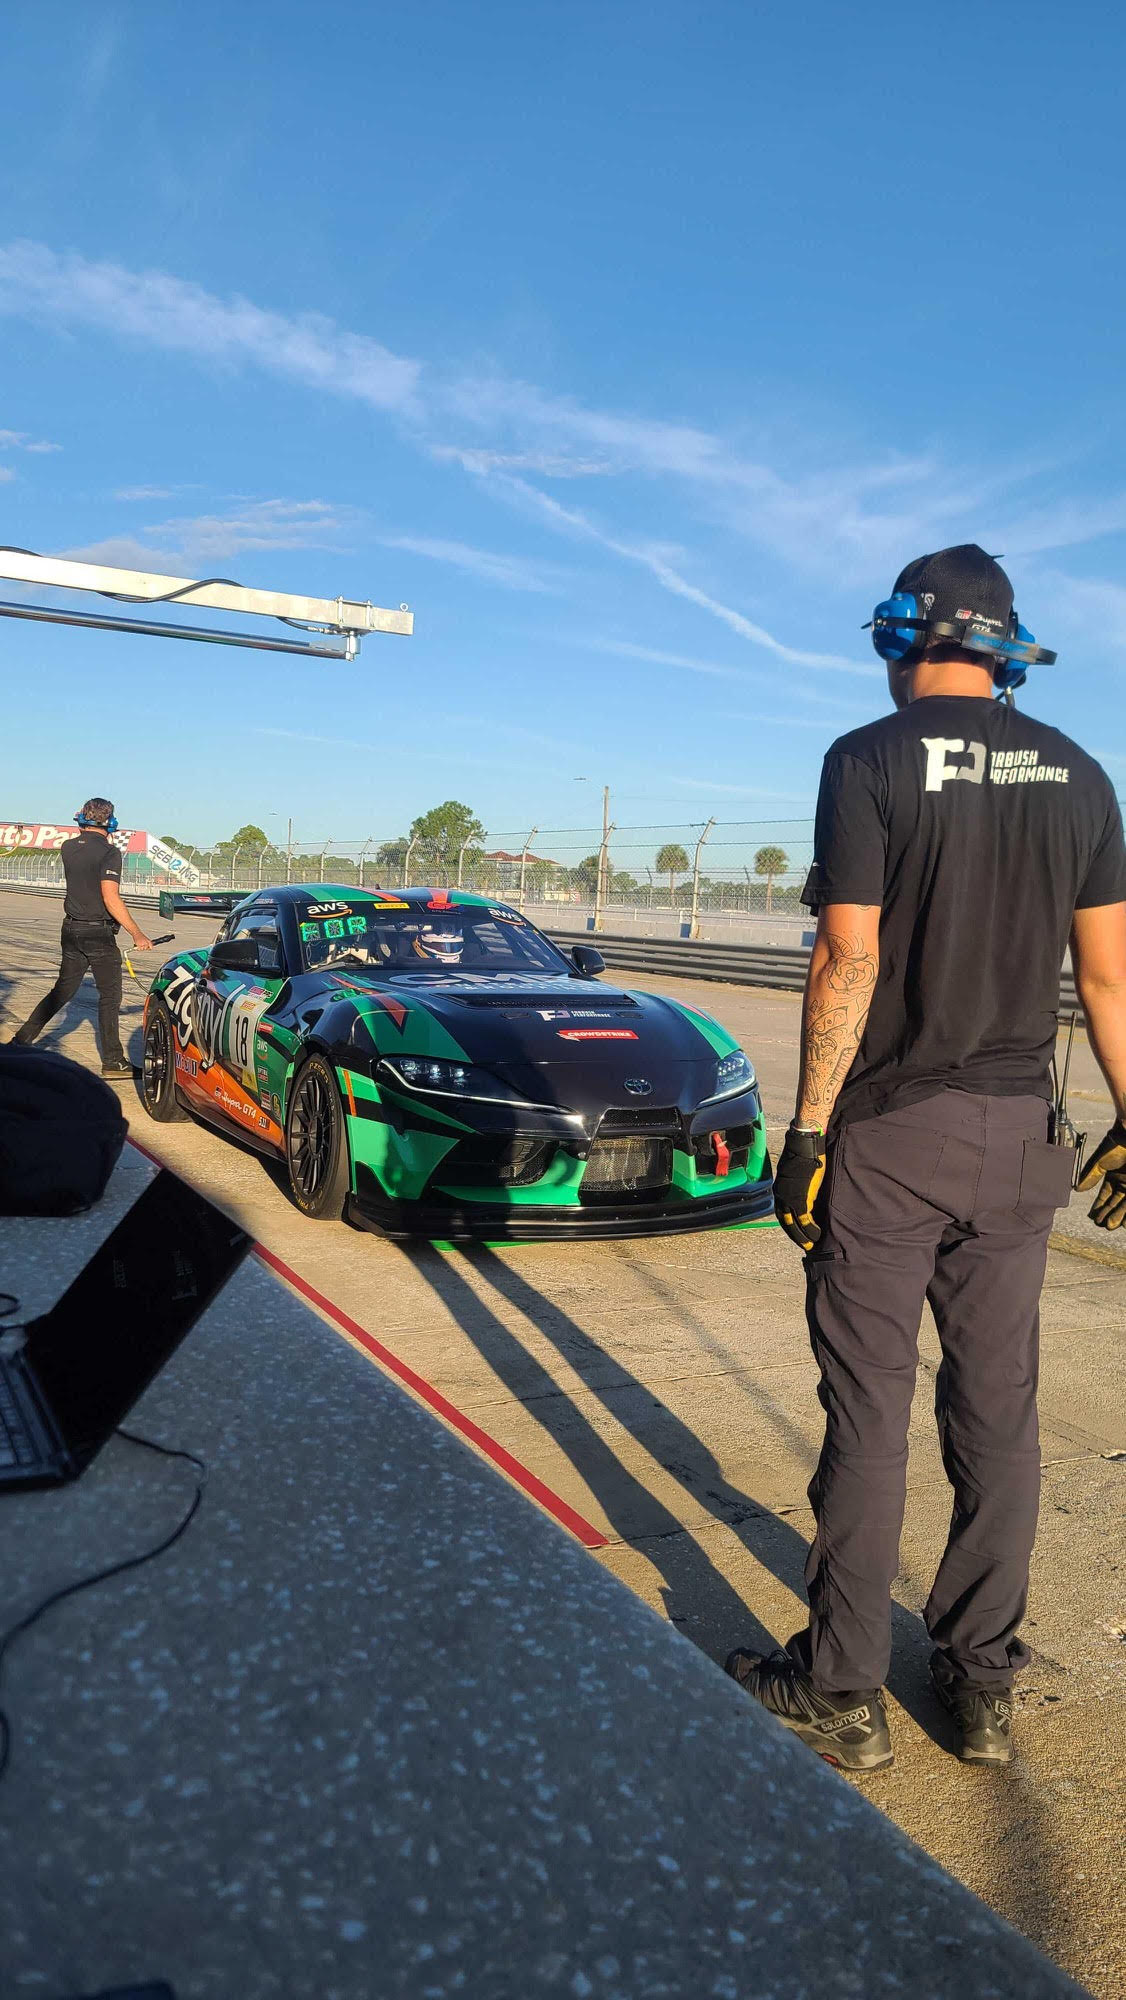 It was a productive day of testing leading into the event, which started the team off on the right foot.